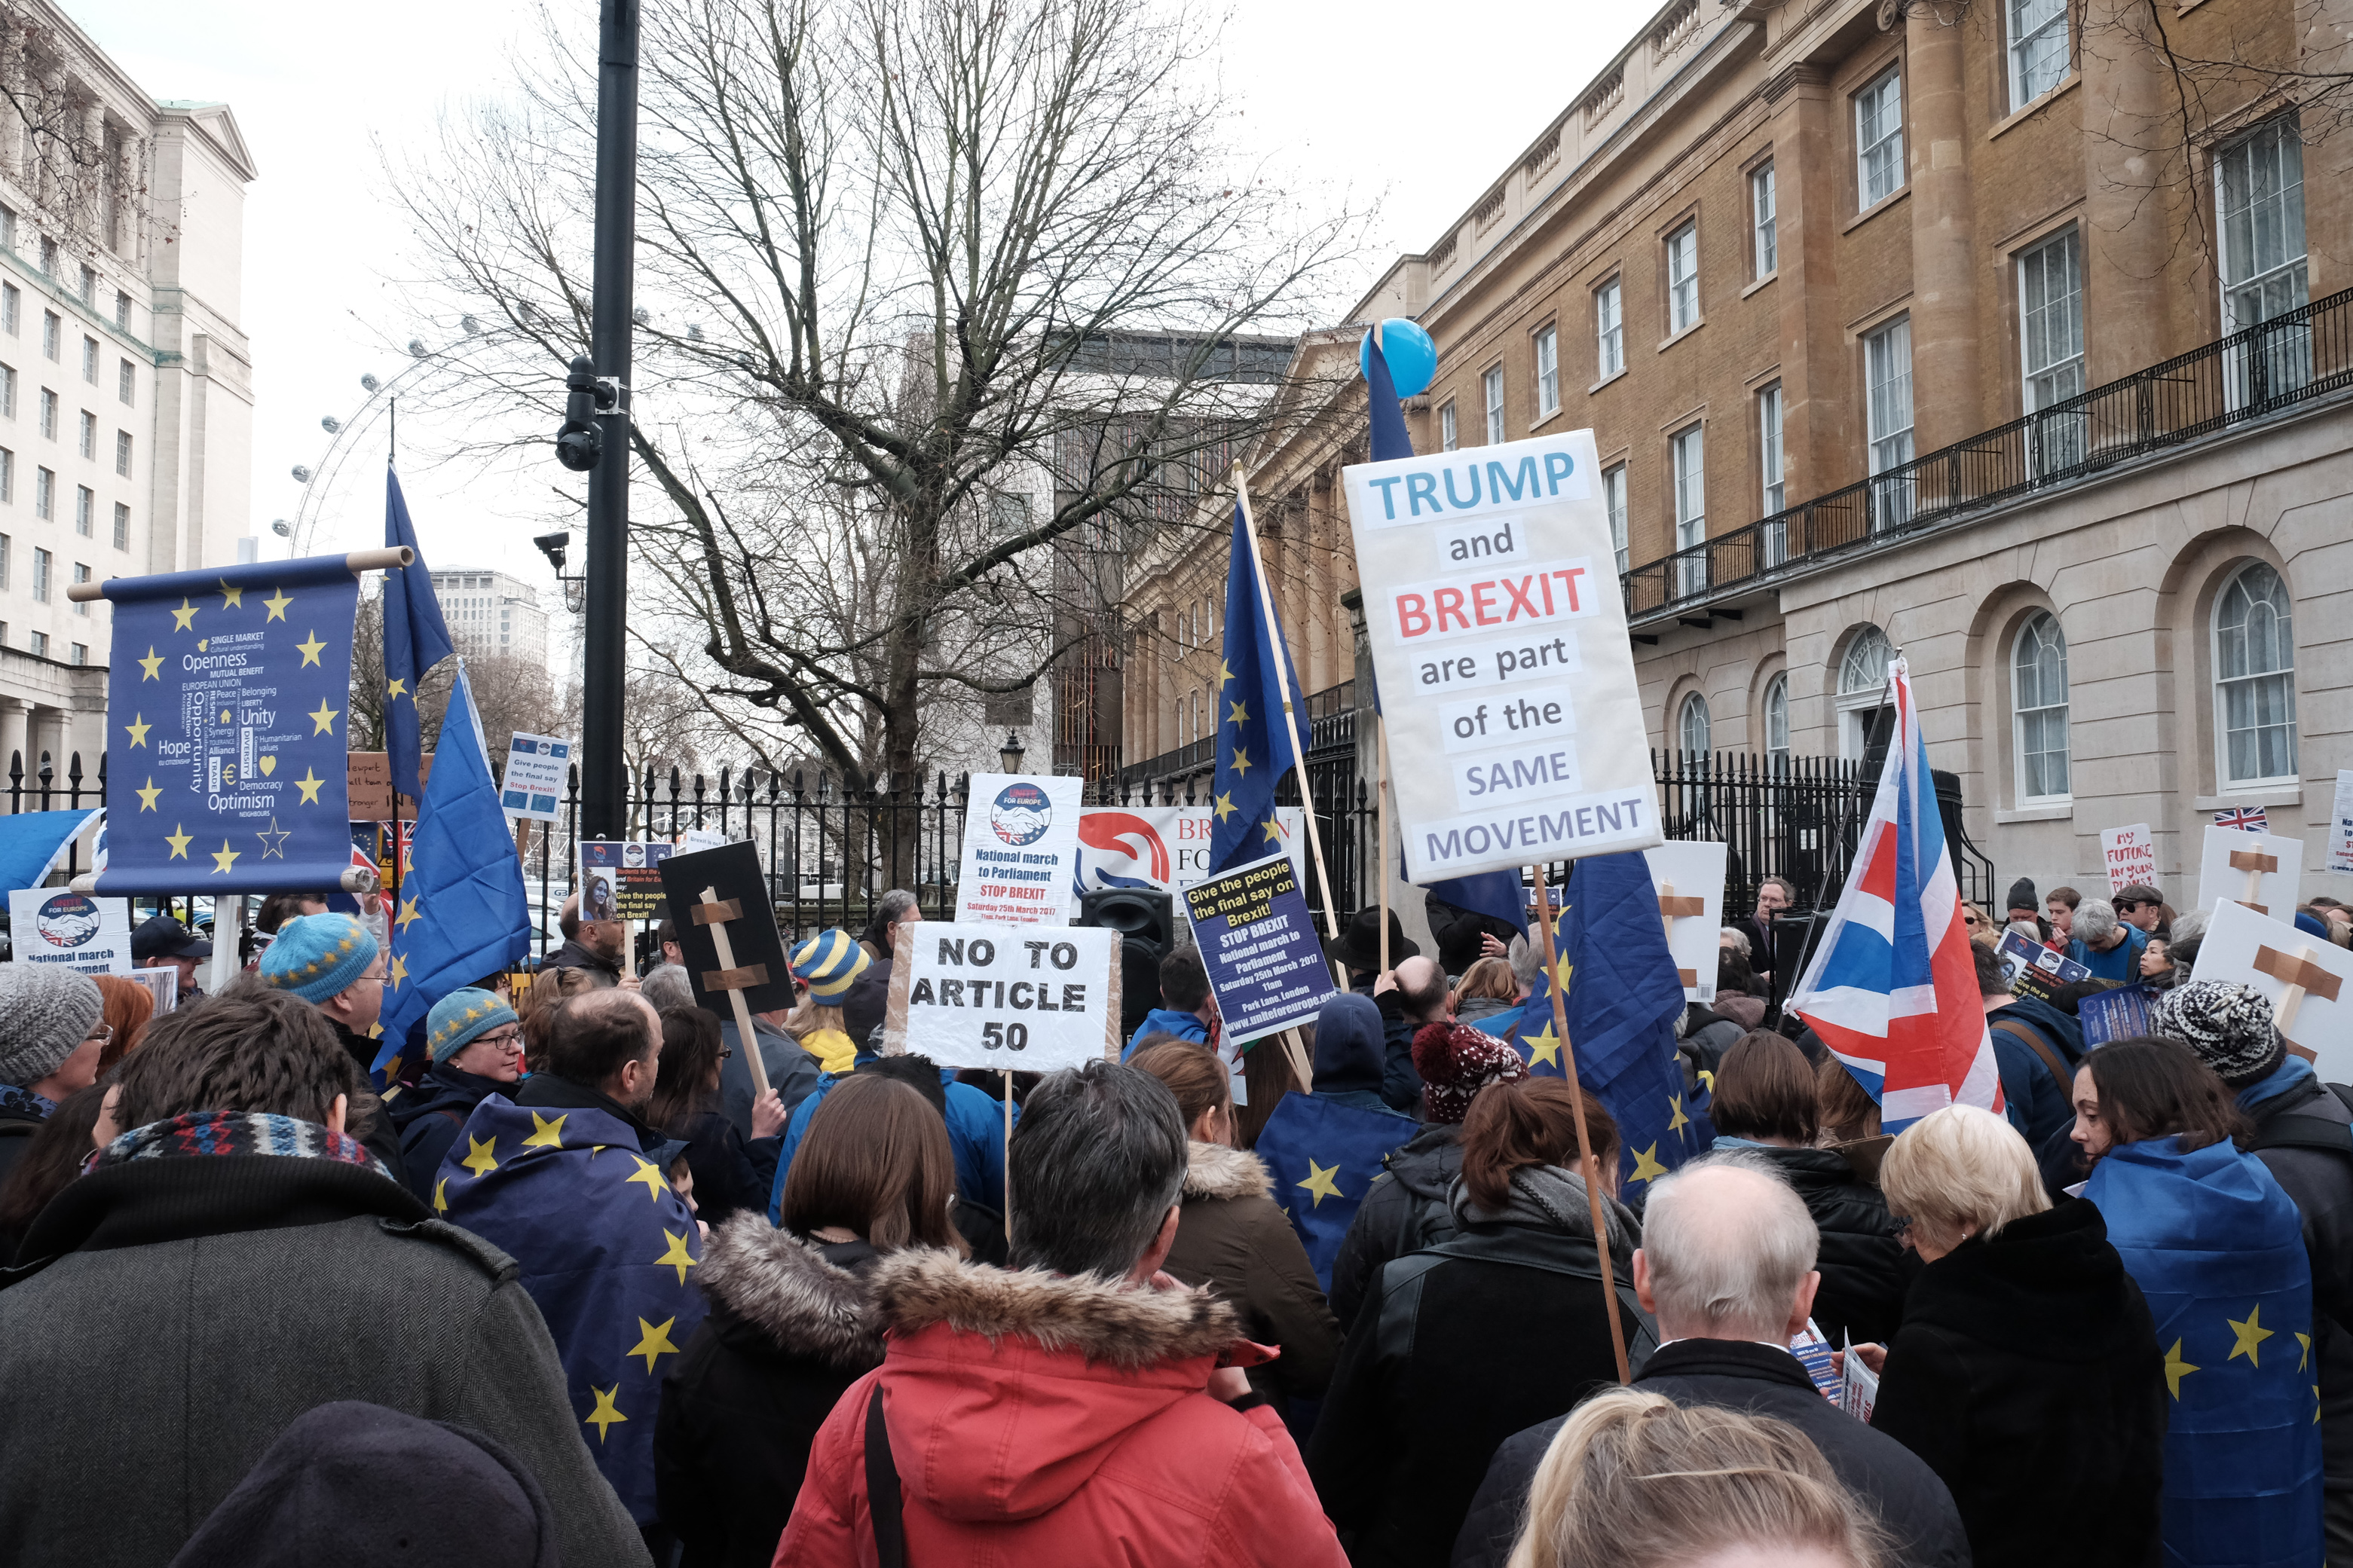 Demonstrators hold anti-Brexit and anti-US President Donald Trump placards as they protest outside Downing street in London on February 4, 2017. (Photo by Jay Shaw Baker/NurPhoto via Getty Images)